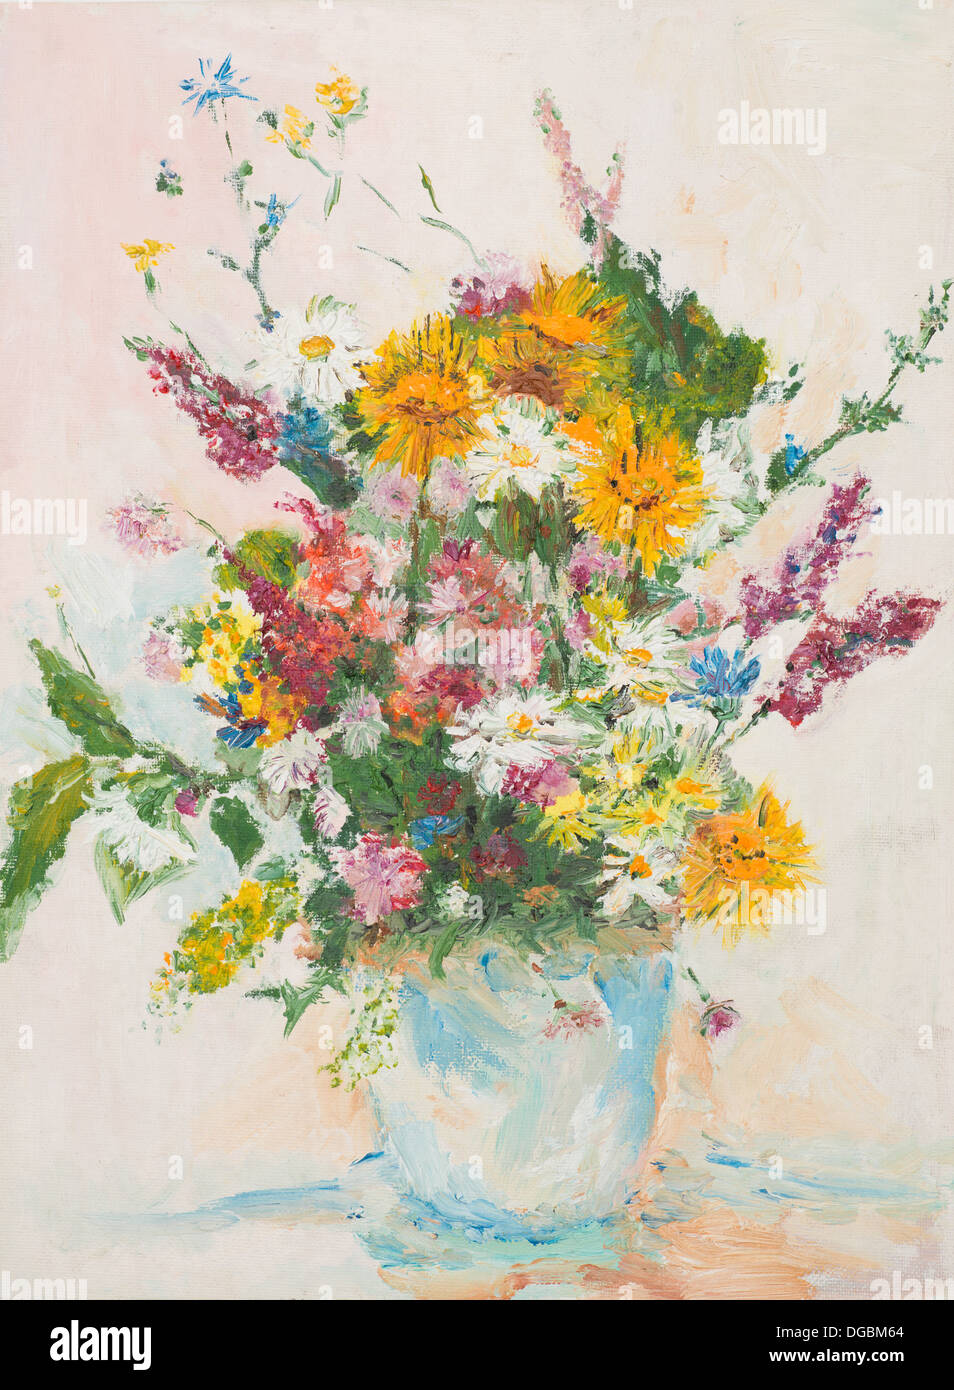 Oil painting illustrating beautiful flower bouquet in glass vase oil painting illustrating beautiful flower bouquet in glass vase izmirmasajfo